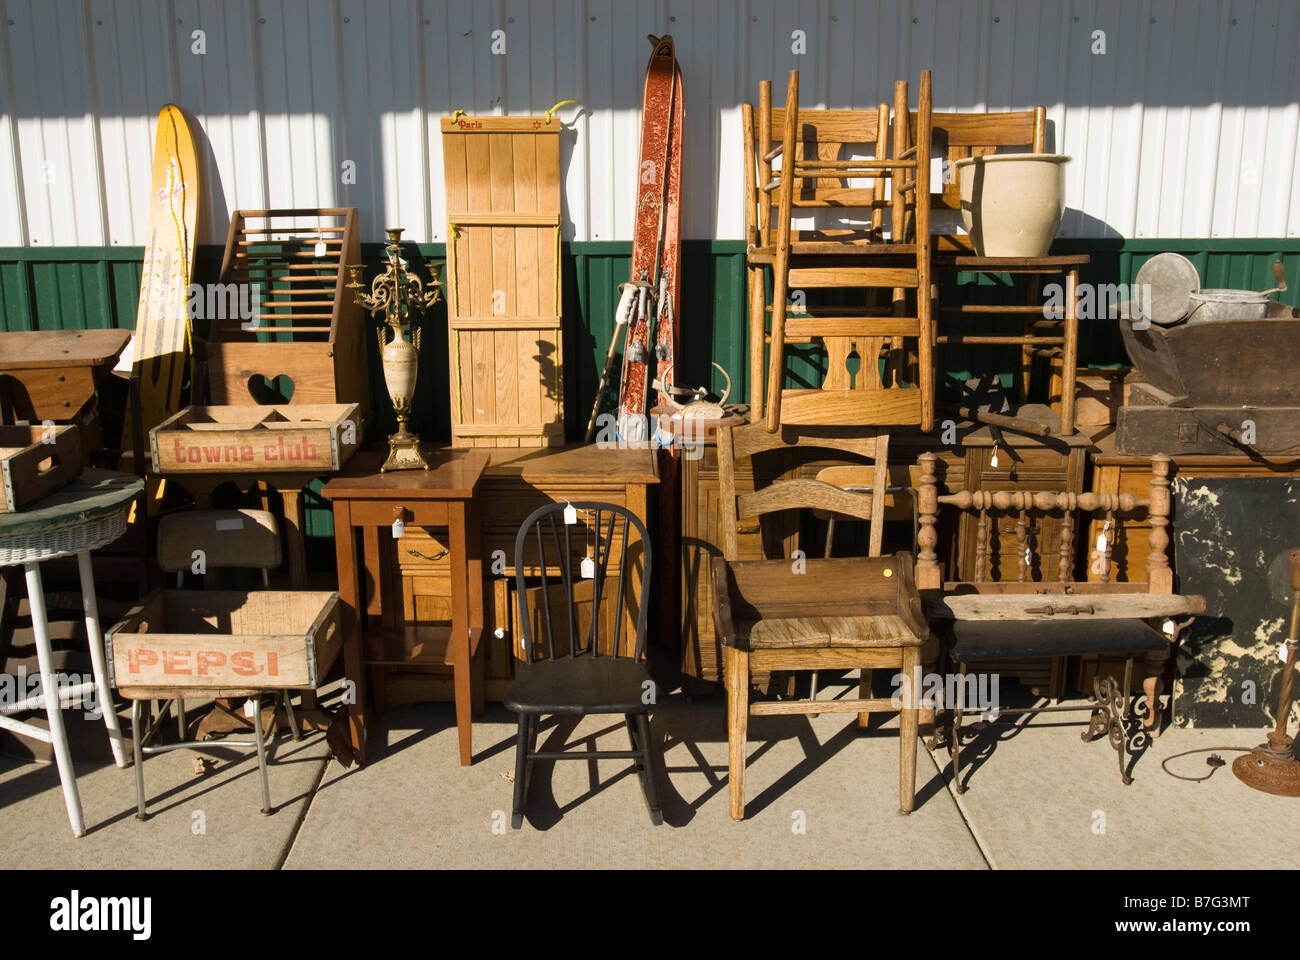 Merveilleux Old Furniture For Sale At An Antique Mall In Michigan, USA.   Stock Image